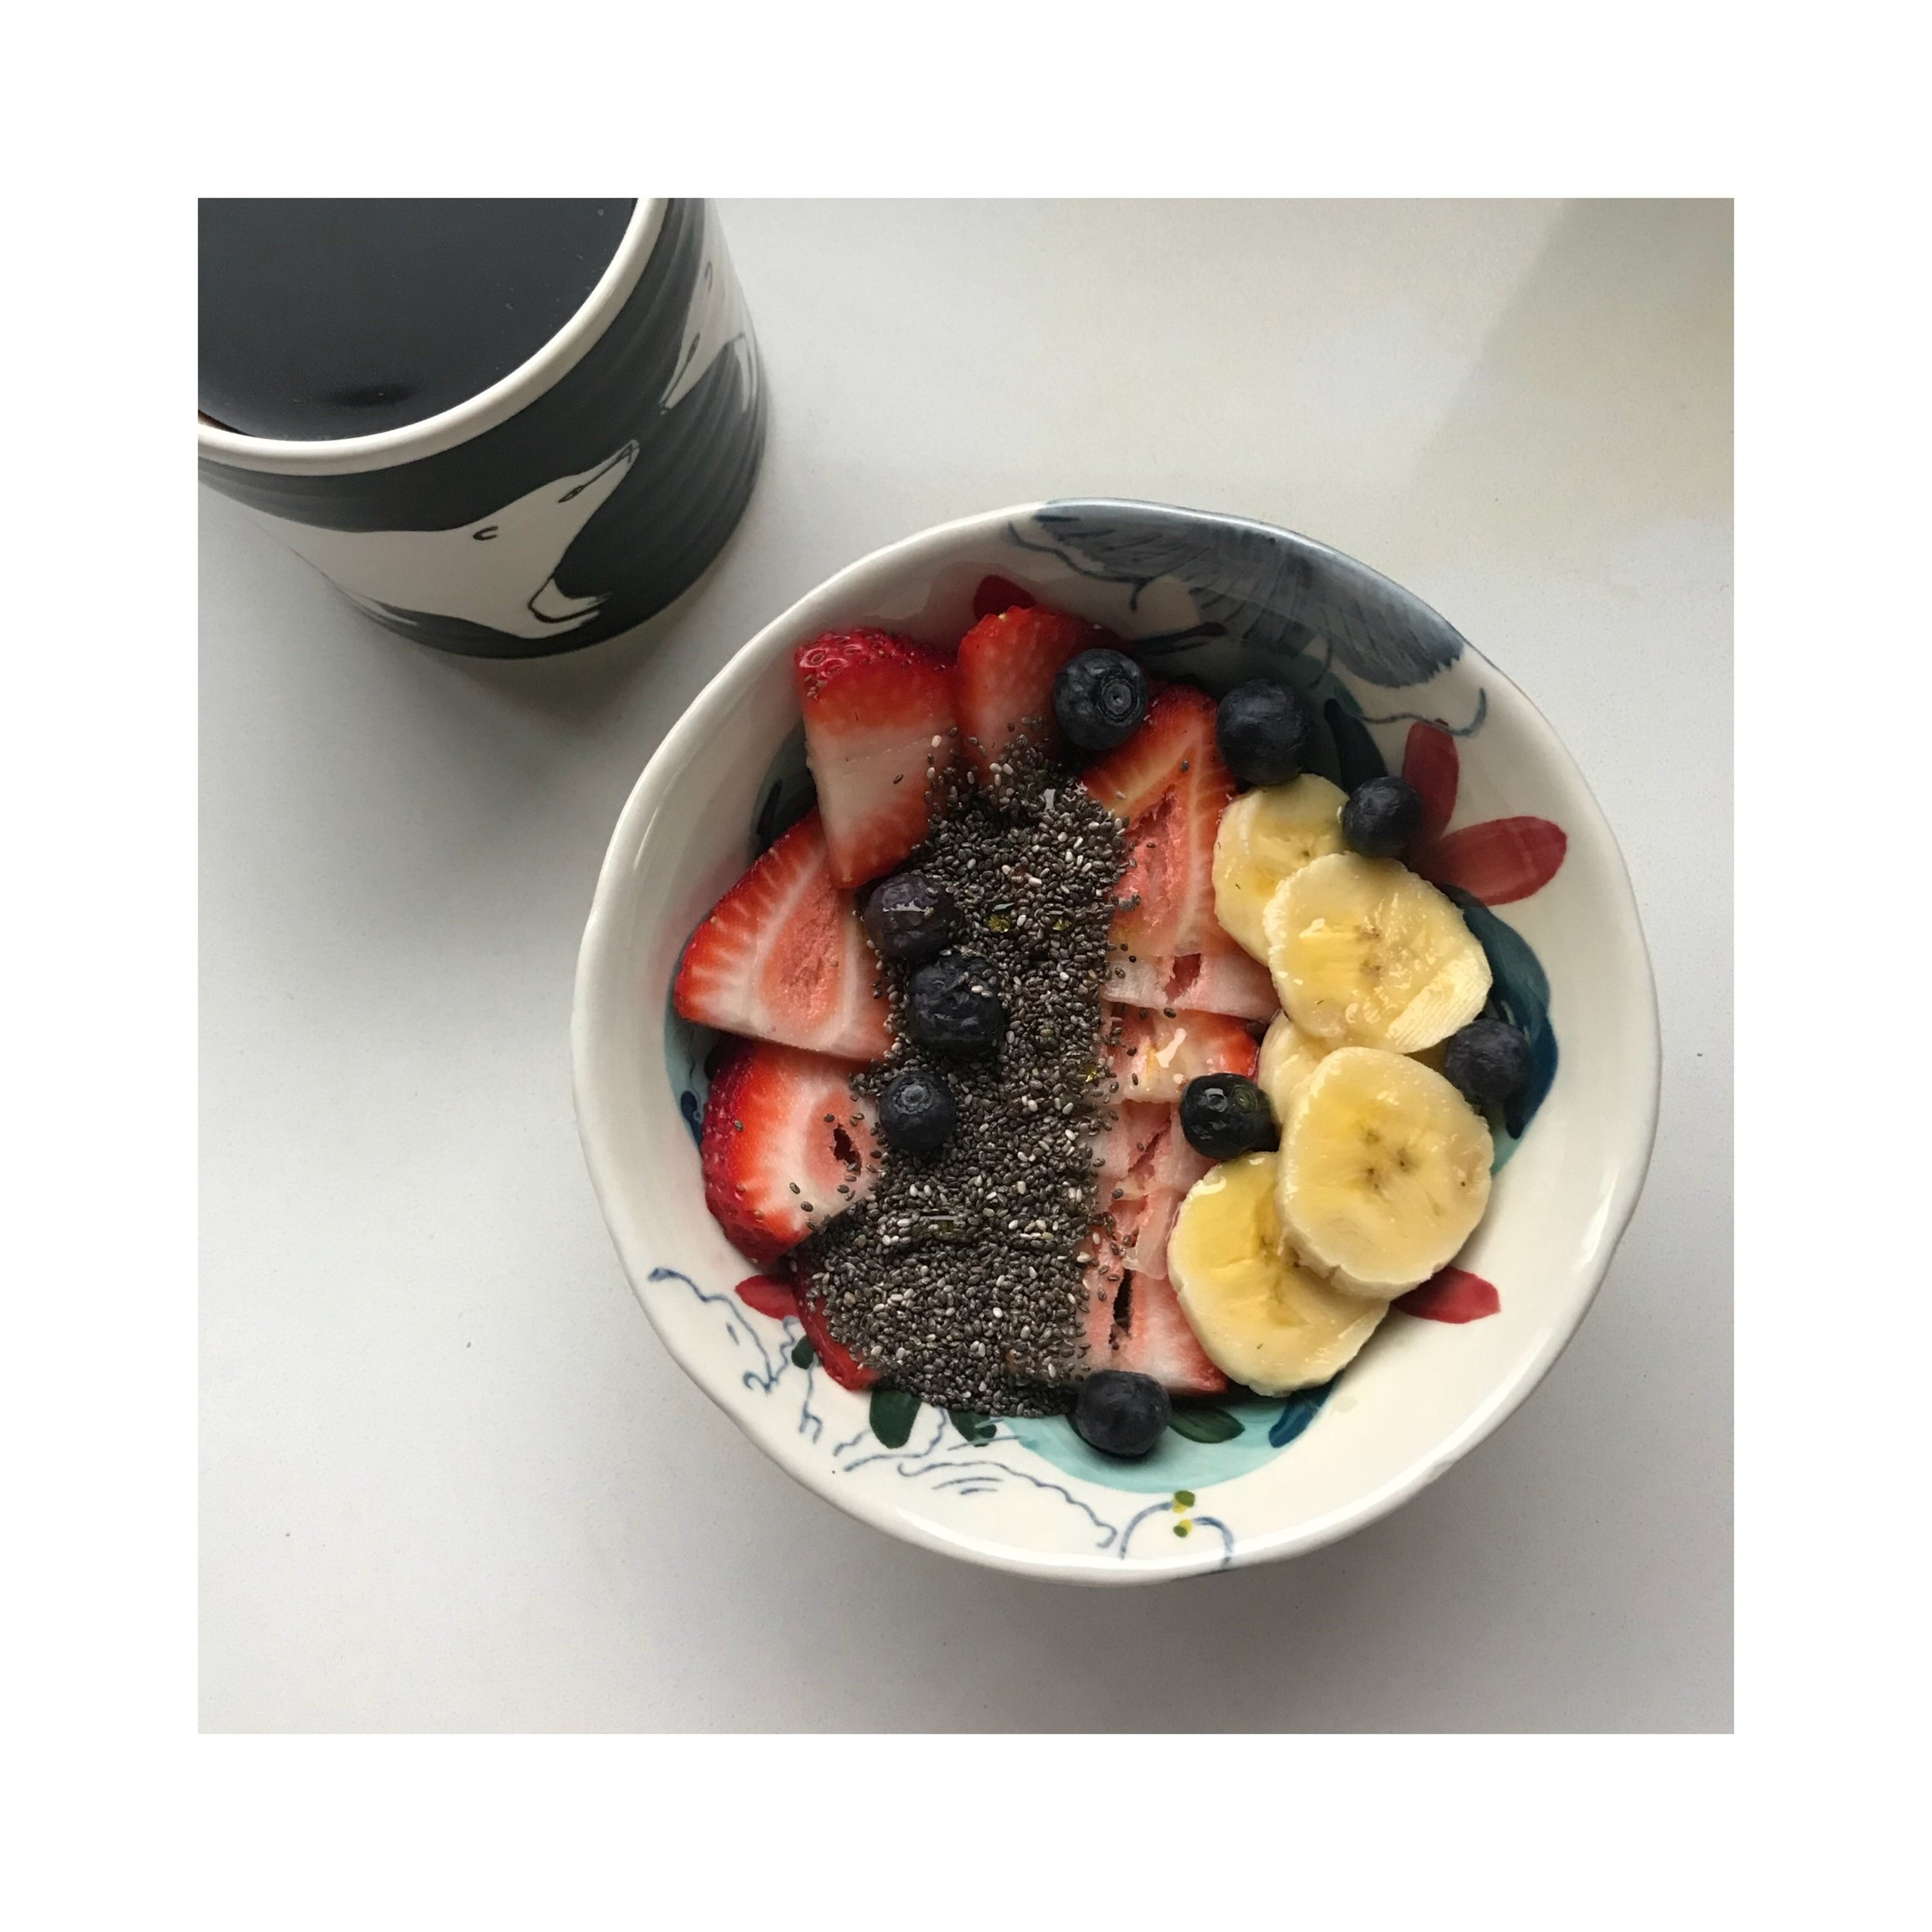 GO-TO Breakfast - Precook  1-cup Quinoa the night before: Combine ingredients below then microwave: Quinoia: 1/2 CupCoconut Milk: 1/3 CupAlmond Butter: 1 to 2 Tb Add: Chia Seeds BananaStrawberriesBlueberries(and drizzle some HONEY!)